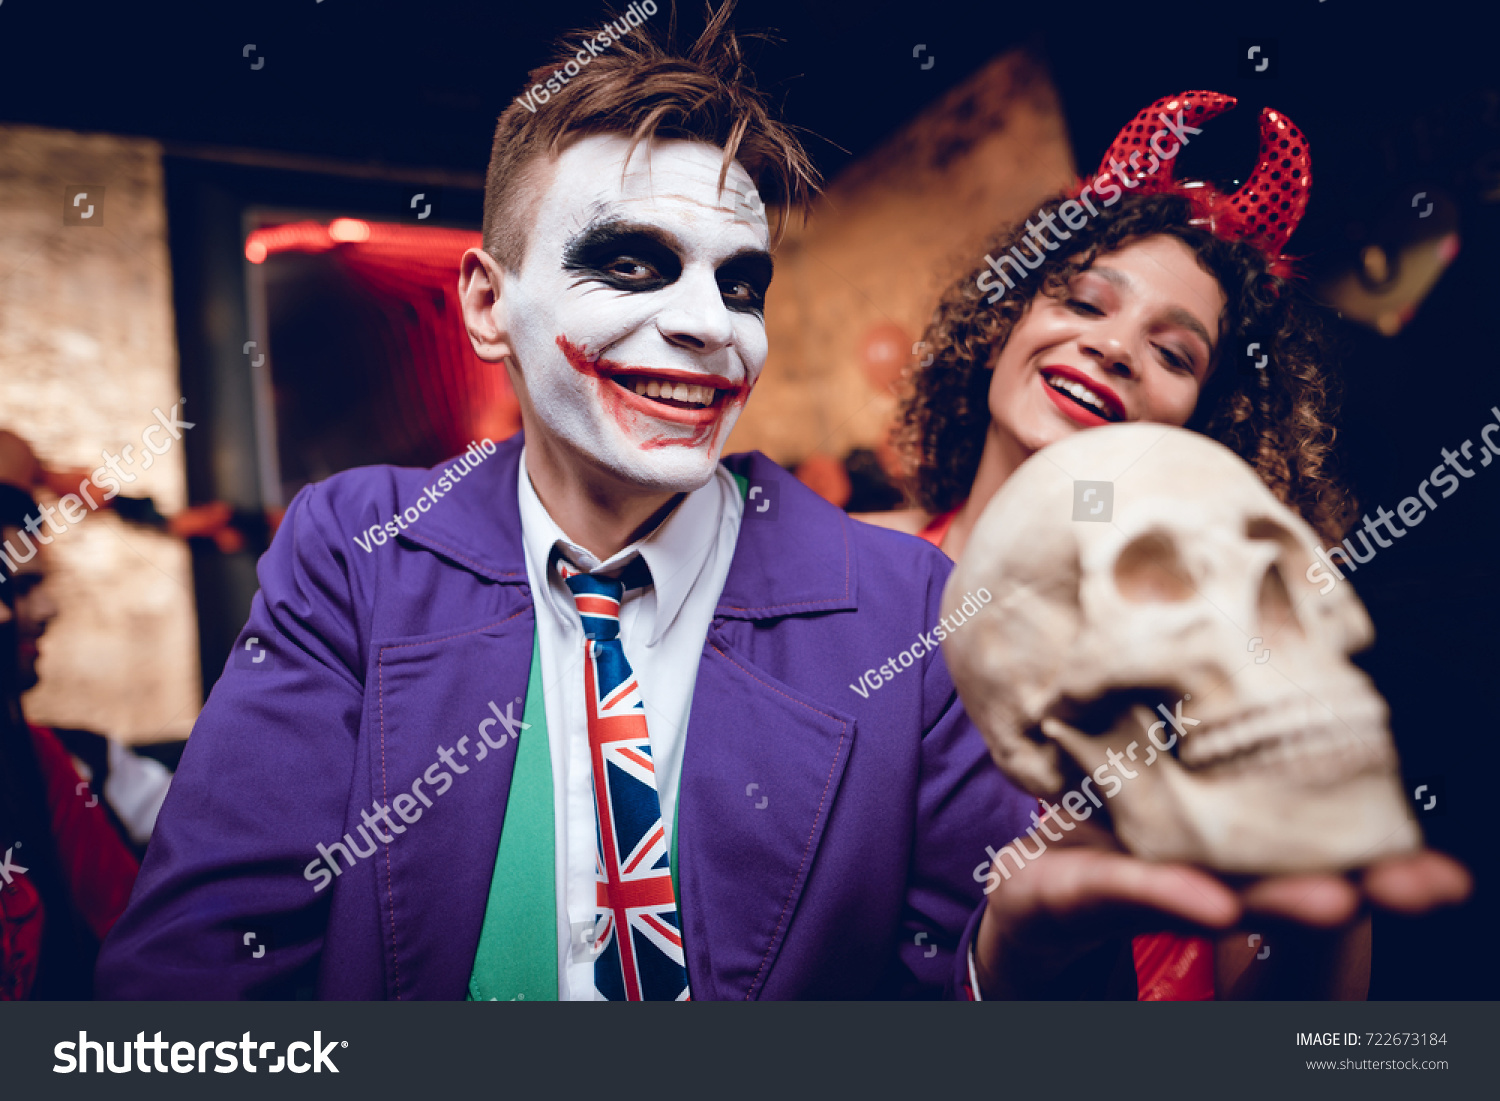 A guy in a Joker costume and a girl in a demon costume posing with a  sc 1 st  Shutterstock & Guy Joker Costume Girl Demon Costume Stock Photo (Royalty Free ...